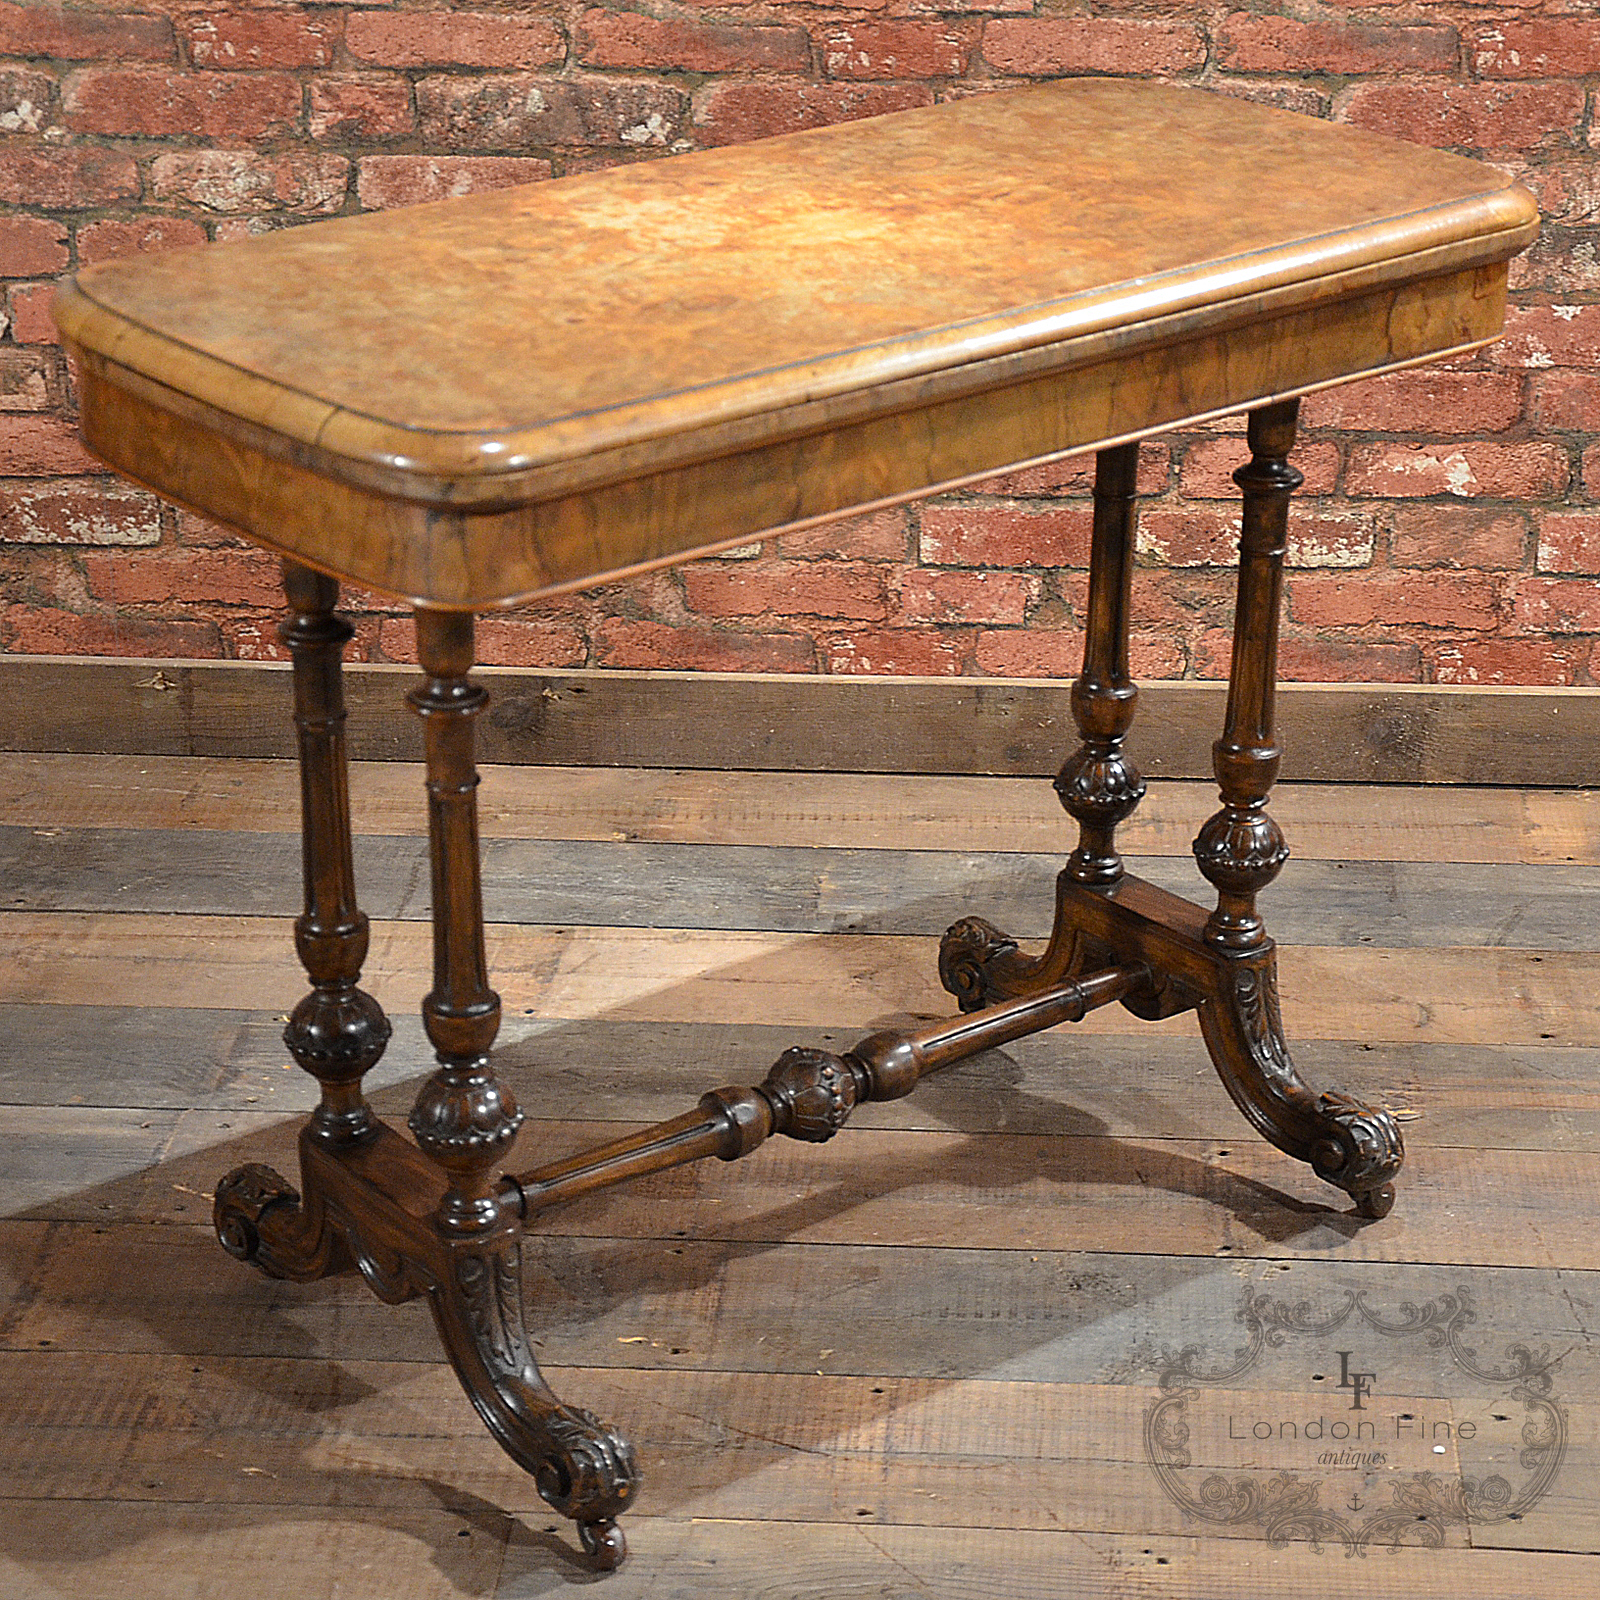 Antique Coffee Table With Folding Sides: Antique Fold Over Card Table In Burr Walnut Veneer